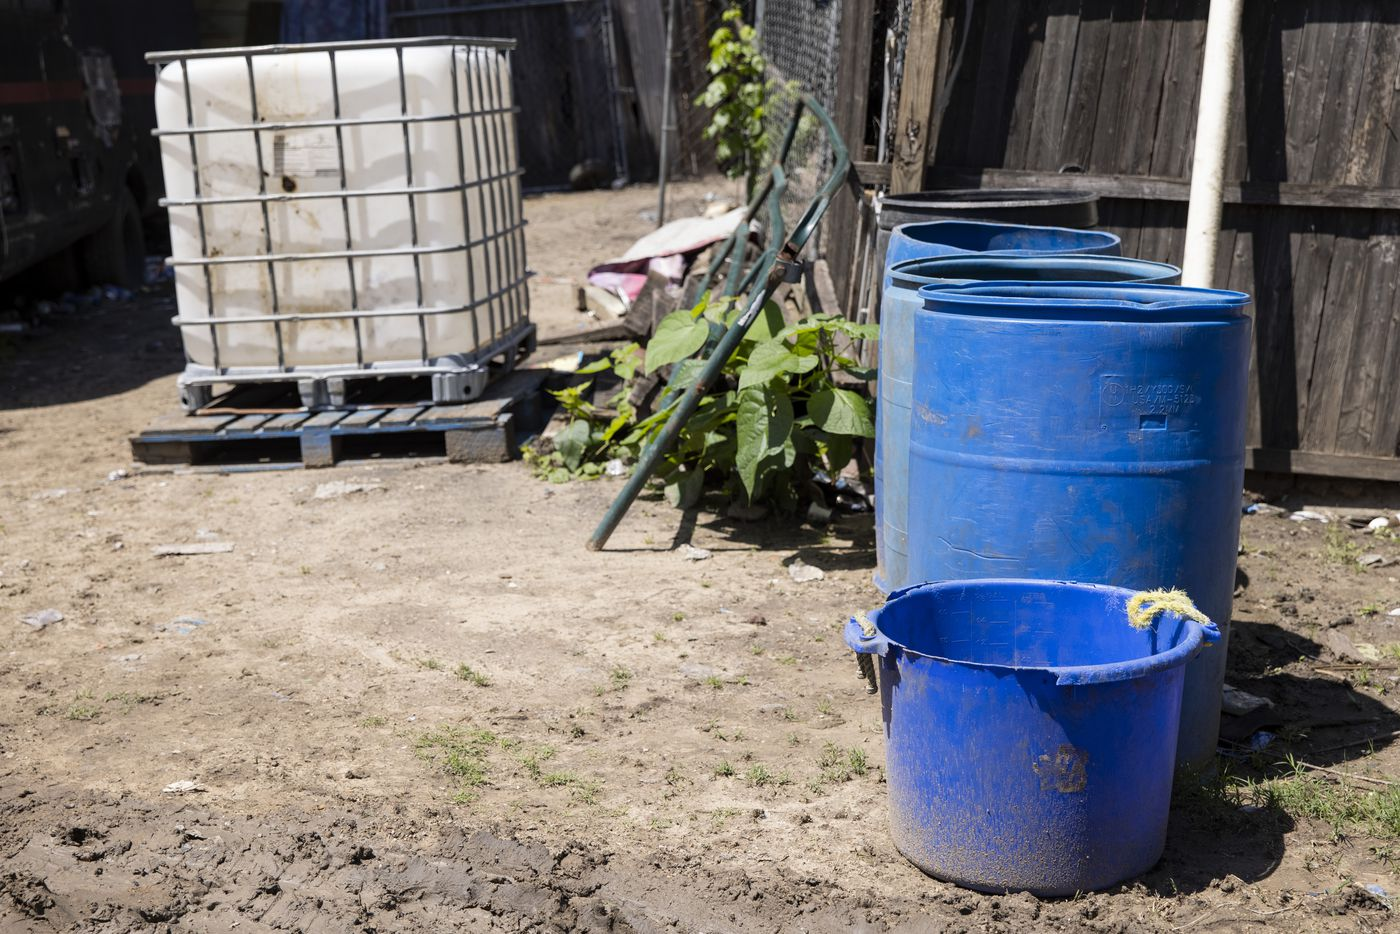 The water Richard Shivers and Rachel Garcia use for their daily needs in a barrel on their lot on Wednesday, May 26, 2021, in Sandbranch. (Juan Figueroa/The Dallas Morning News)